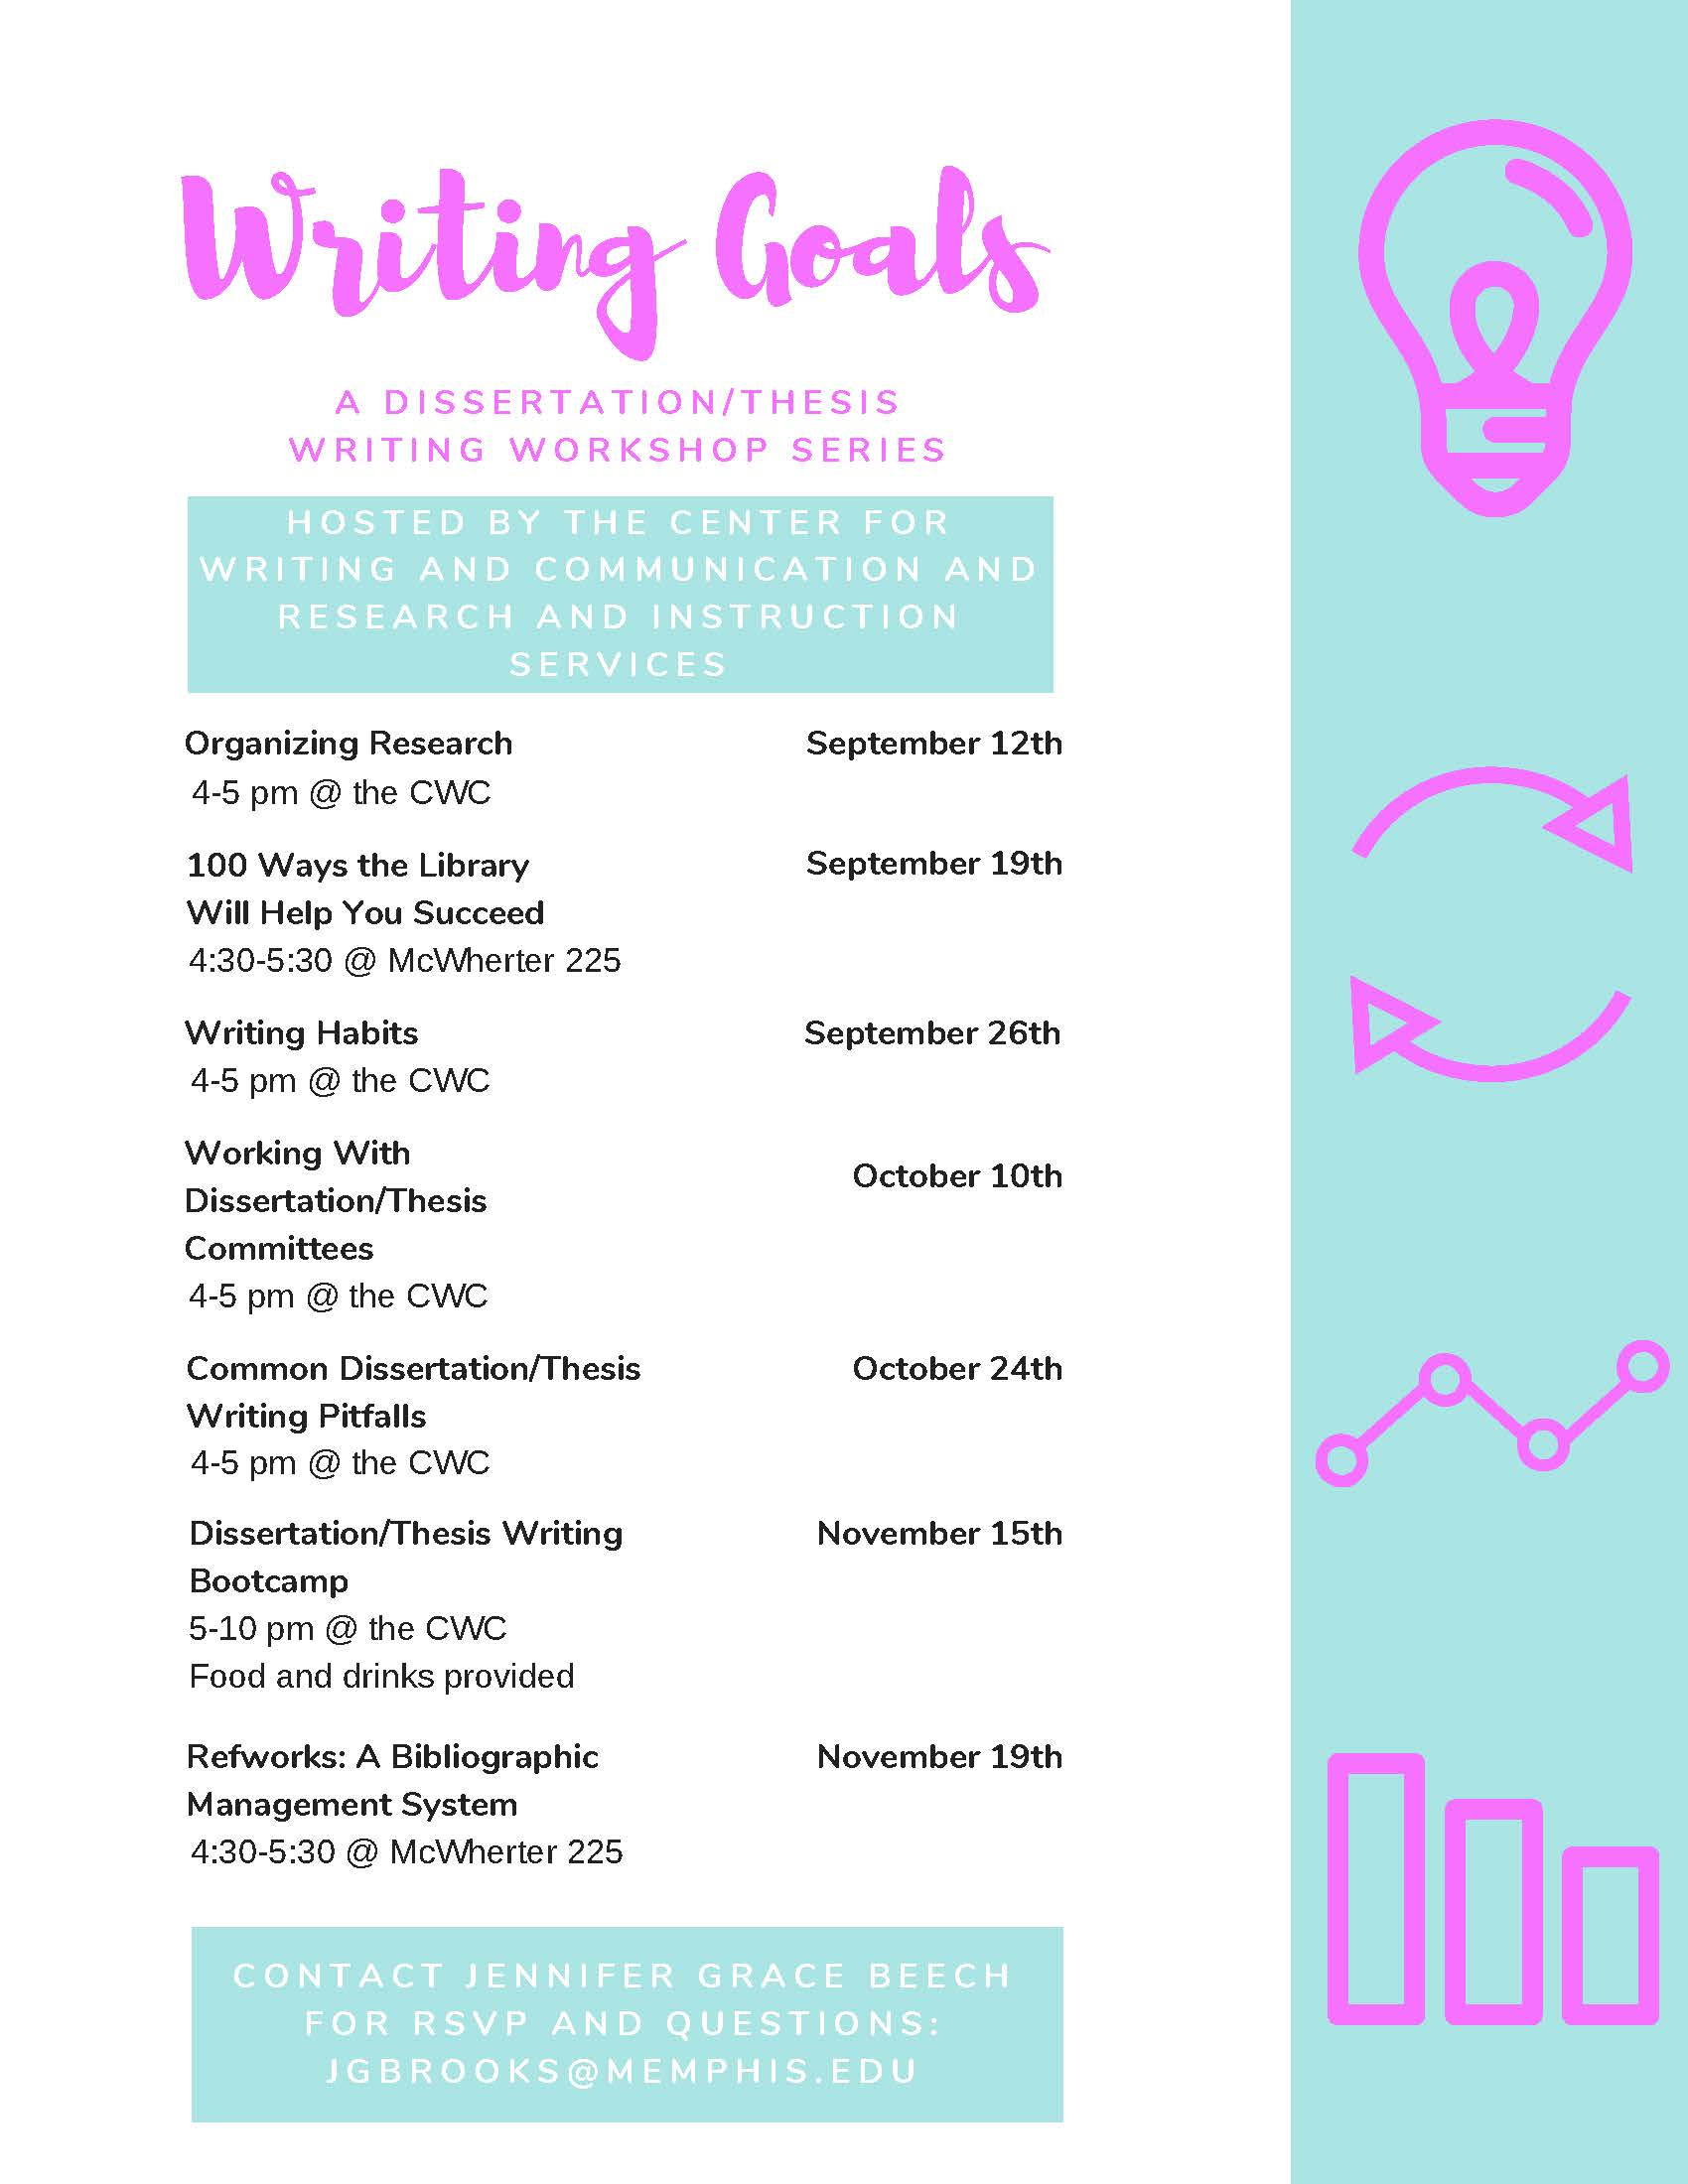 Writing Goals Workshop: 100 Ways the Library Will Help You Succeed